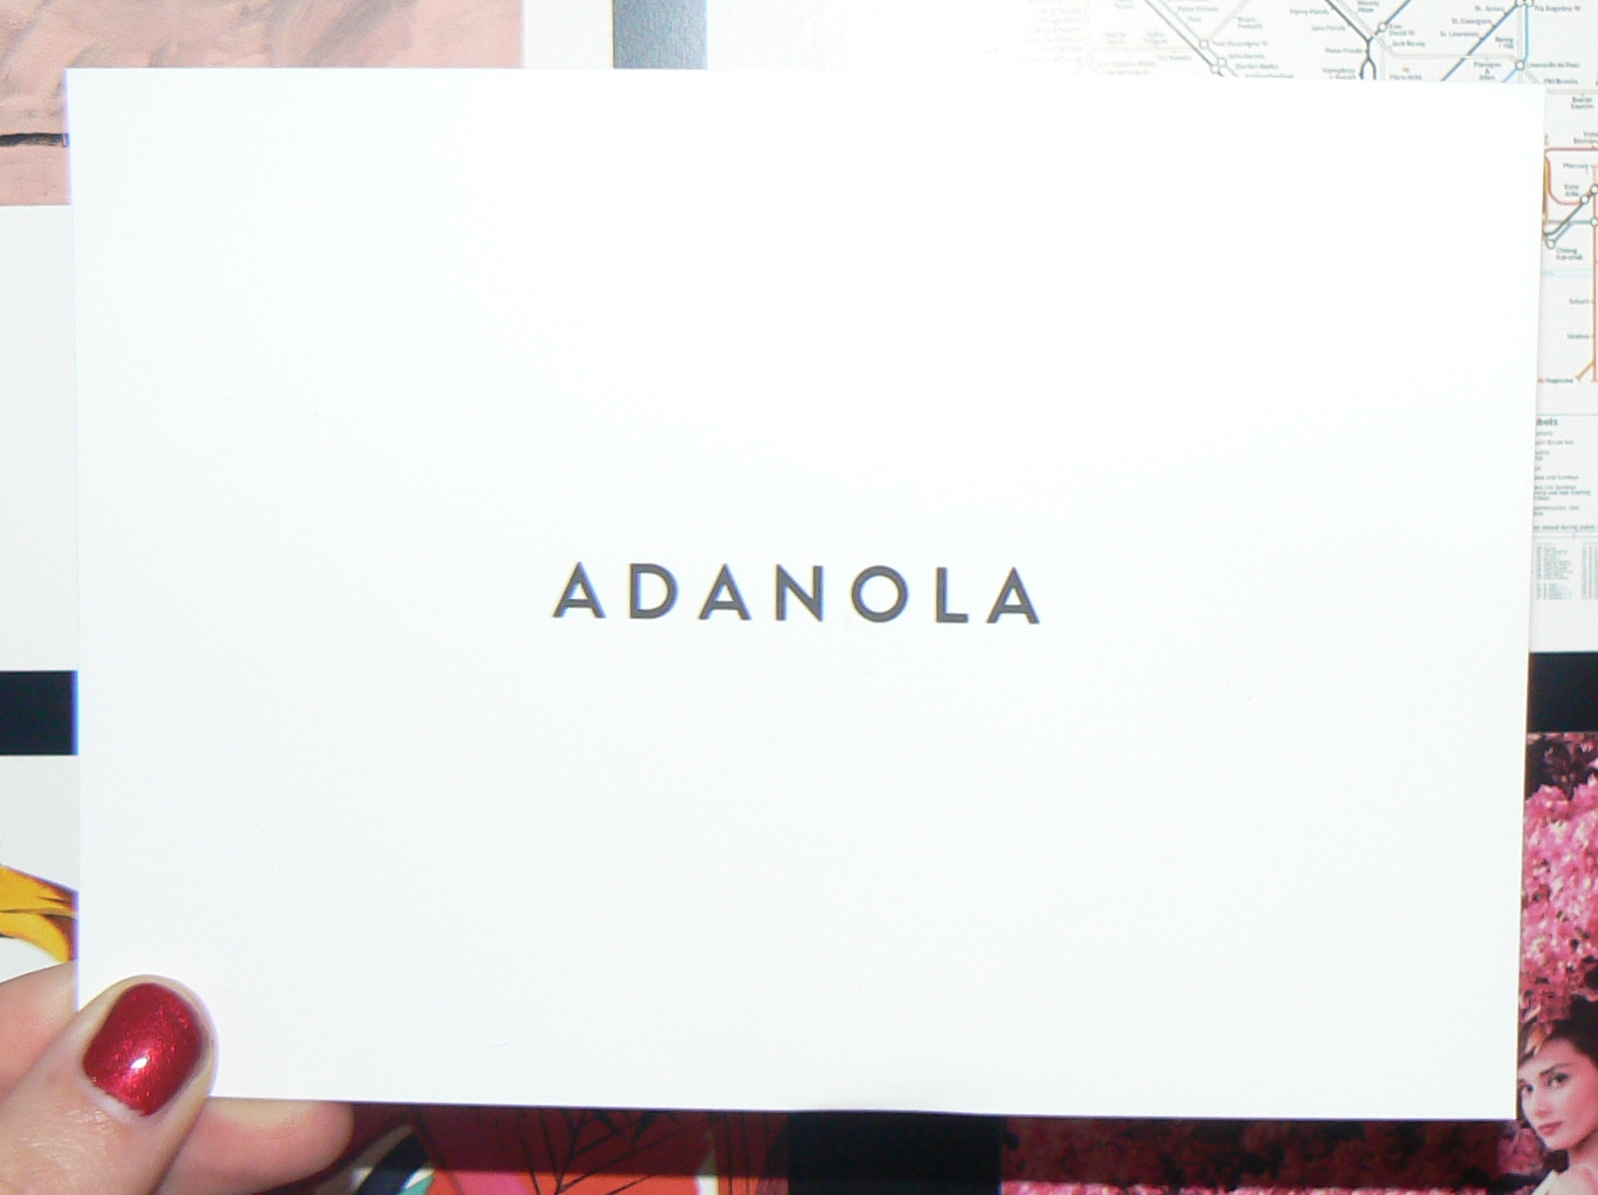 a26299e86d So the brand today s post is going to be about is Adanola! Now I first  became aware of this company when I went to the clothes show where they had  a stand.